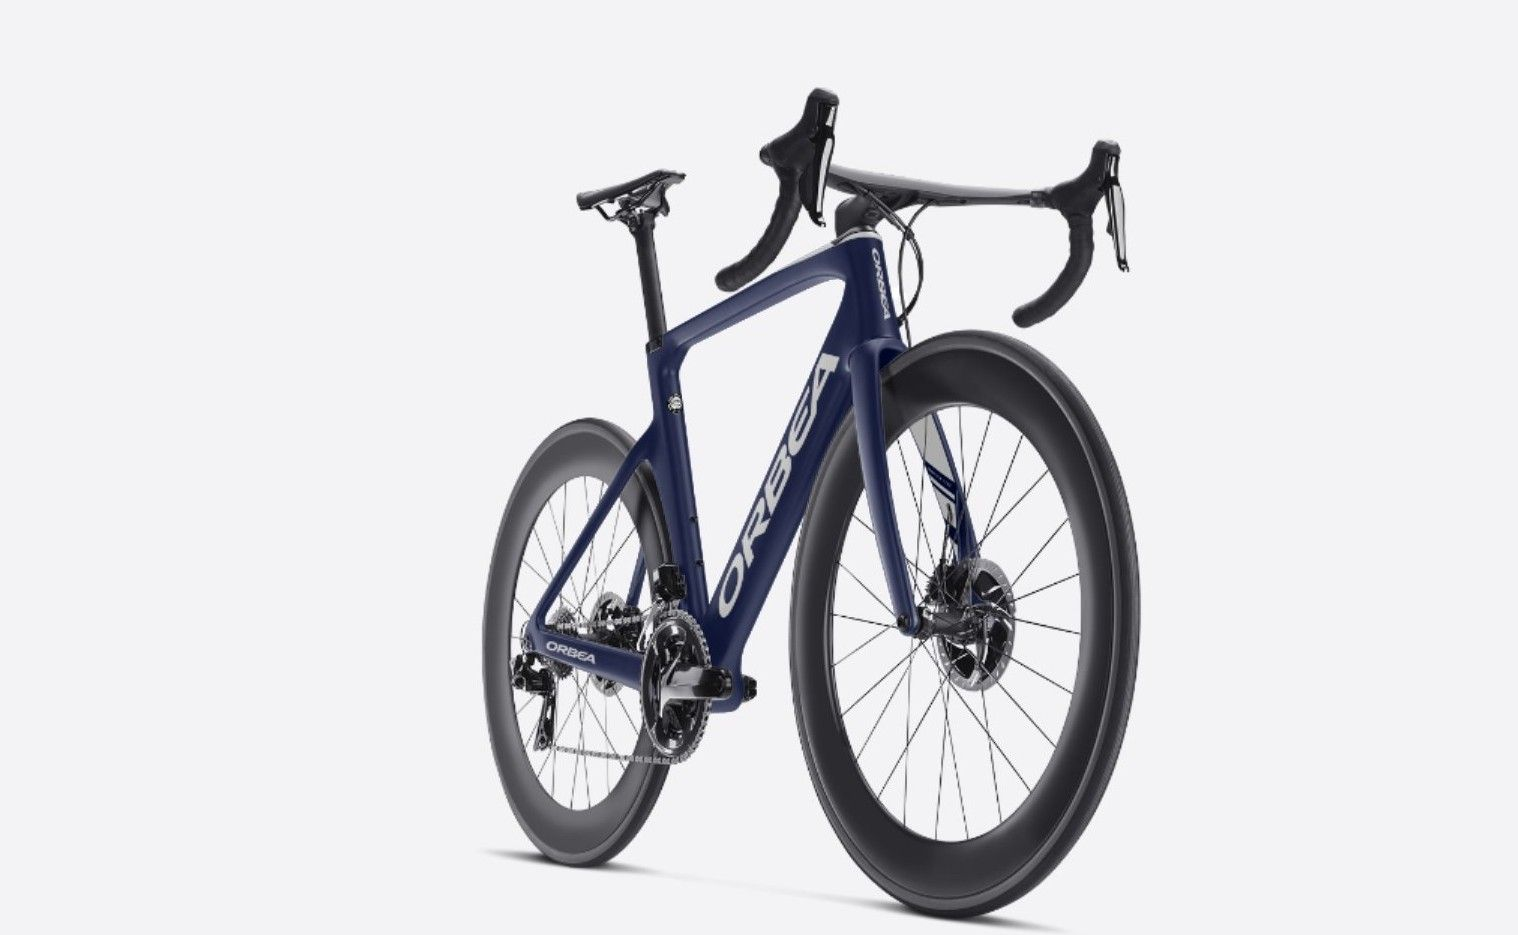 Orbea Orca Aero Omr19 Carbon Disc Designed With Myo Matte Navy Blue With Blue And White Accents Total View From Front Local Bike Shop Bike Shop Orbea